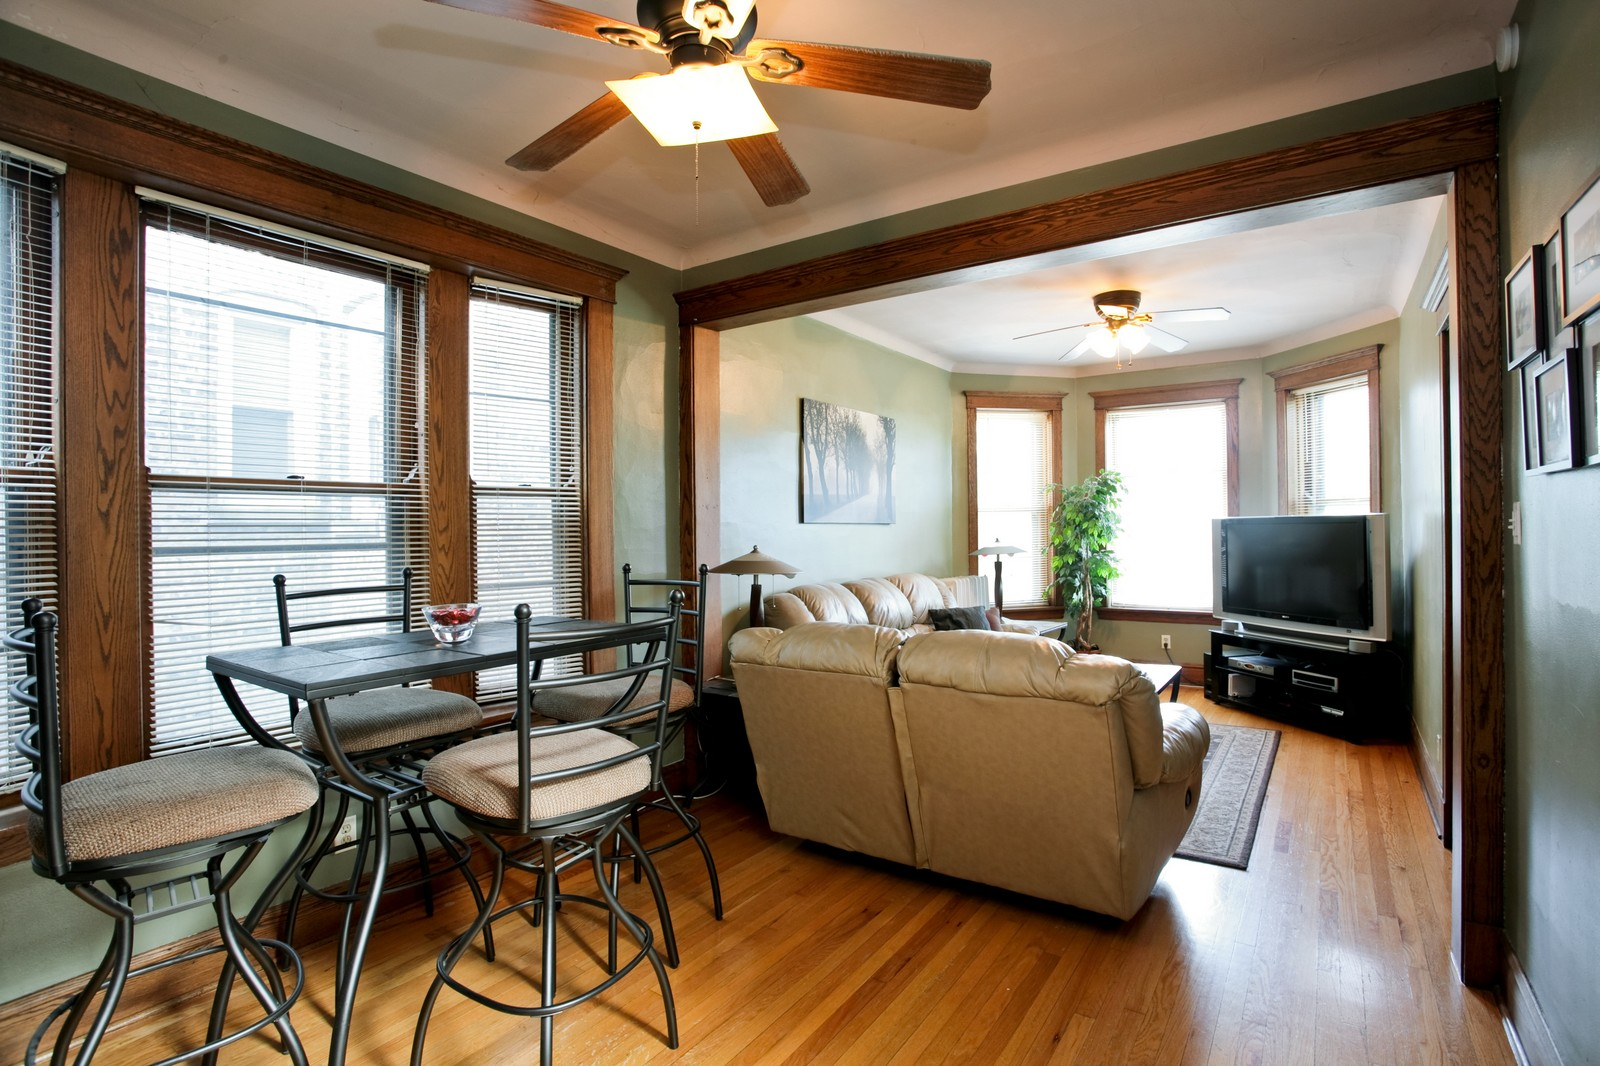 Real Estate Photography - 4113 N Ashland, Chicago, IL, 60613 - Living Rm/Family Rm